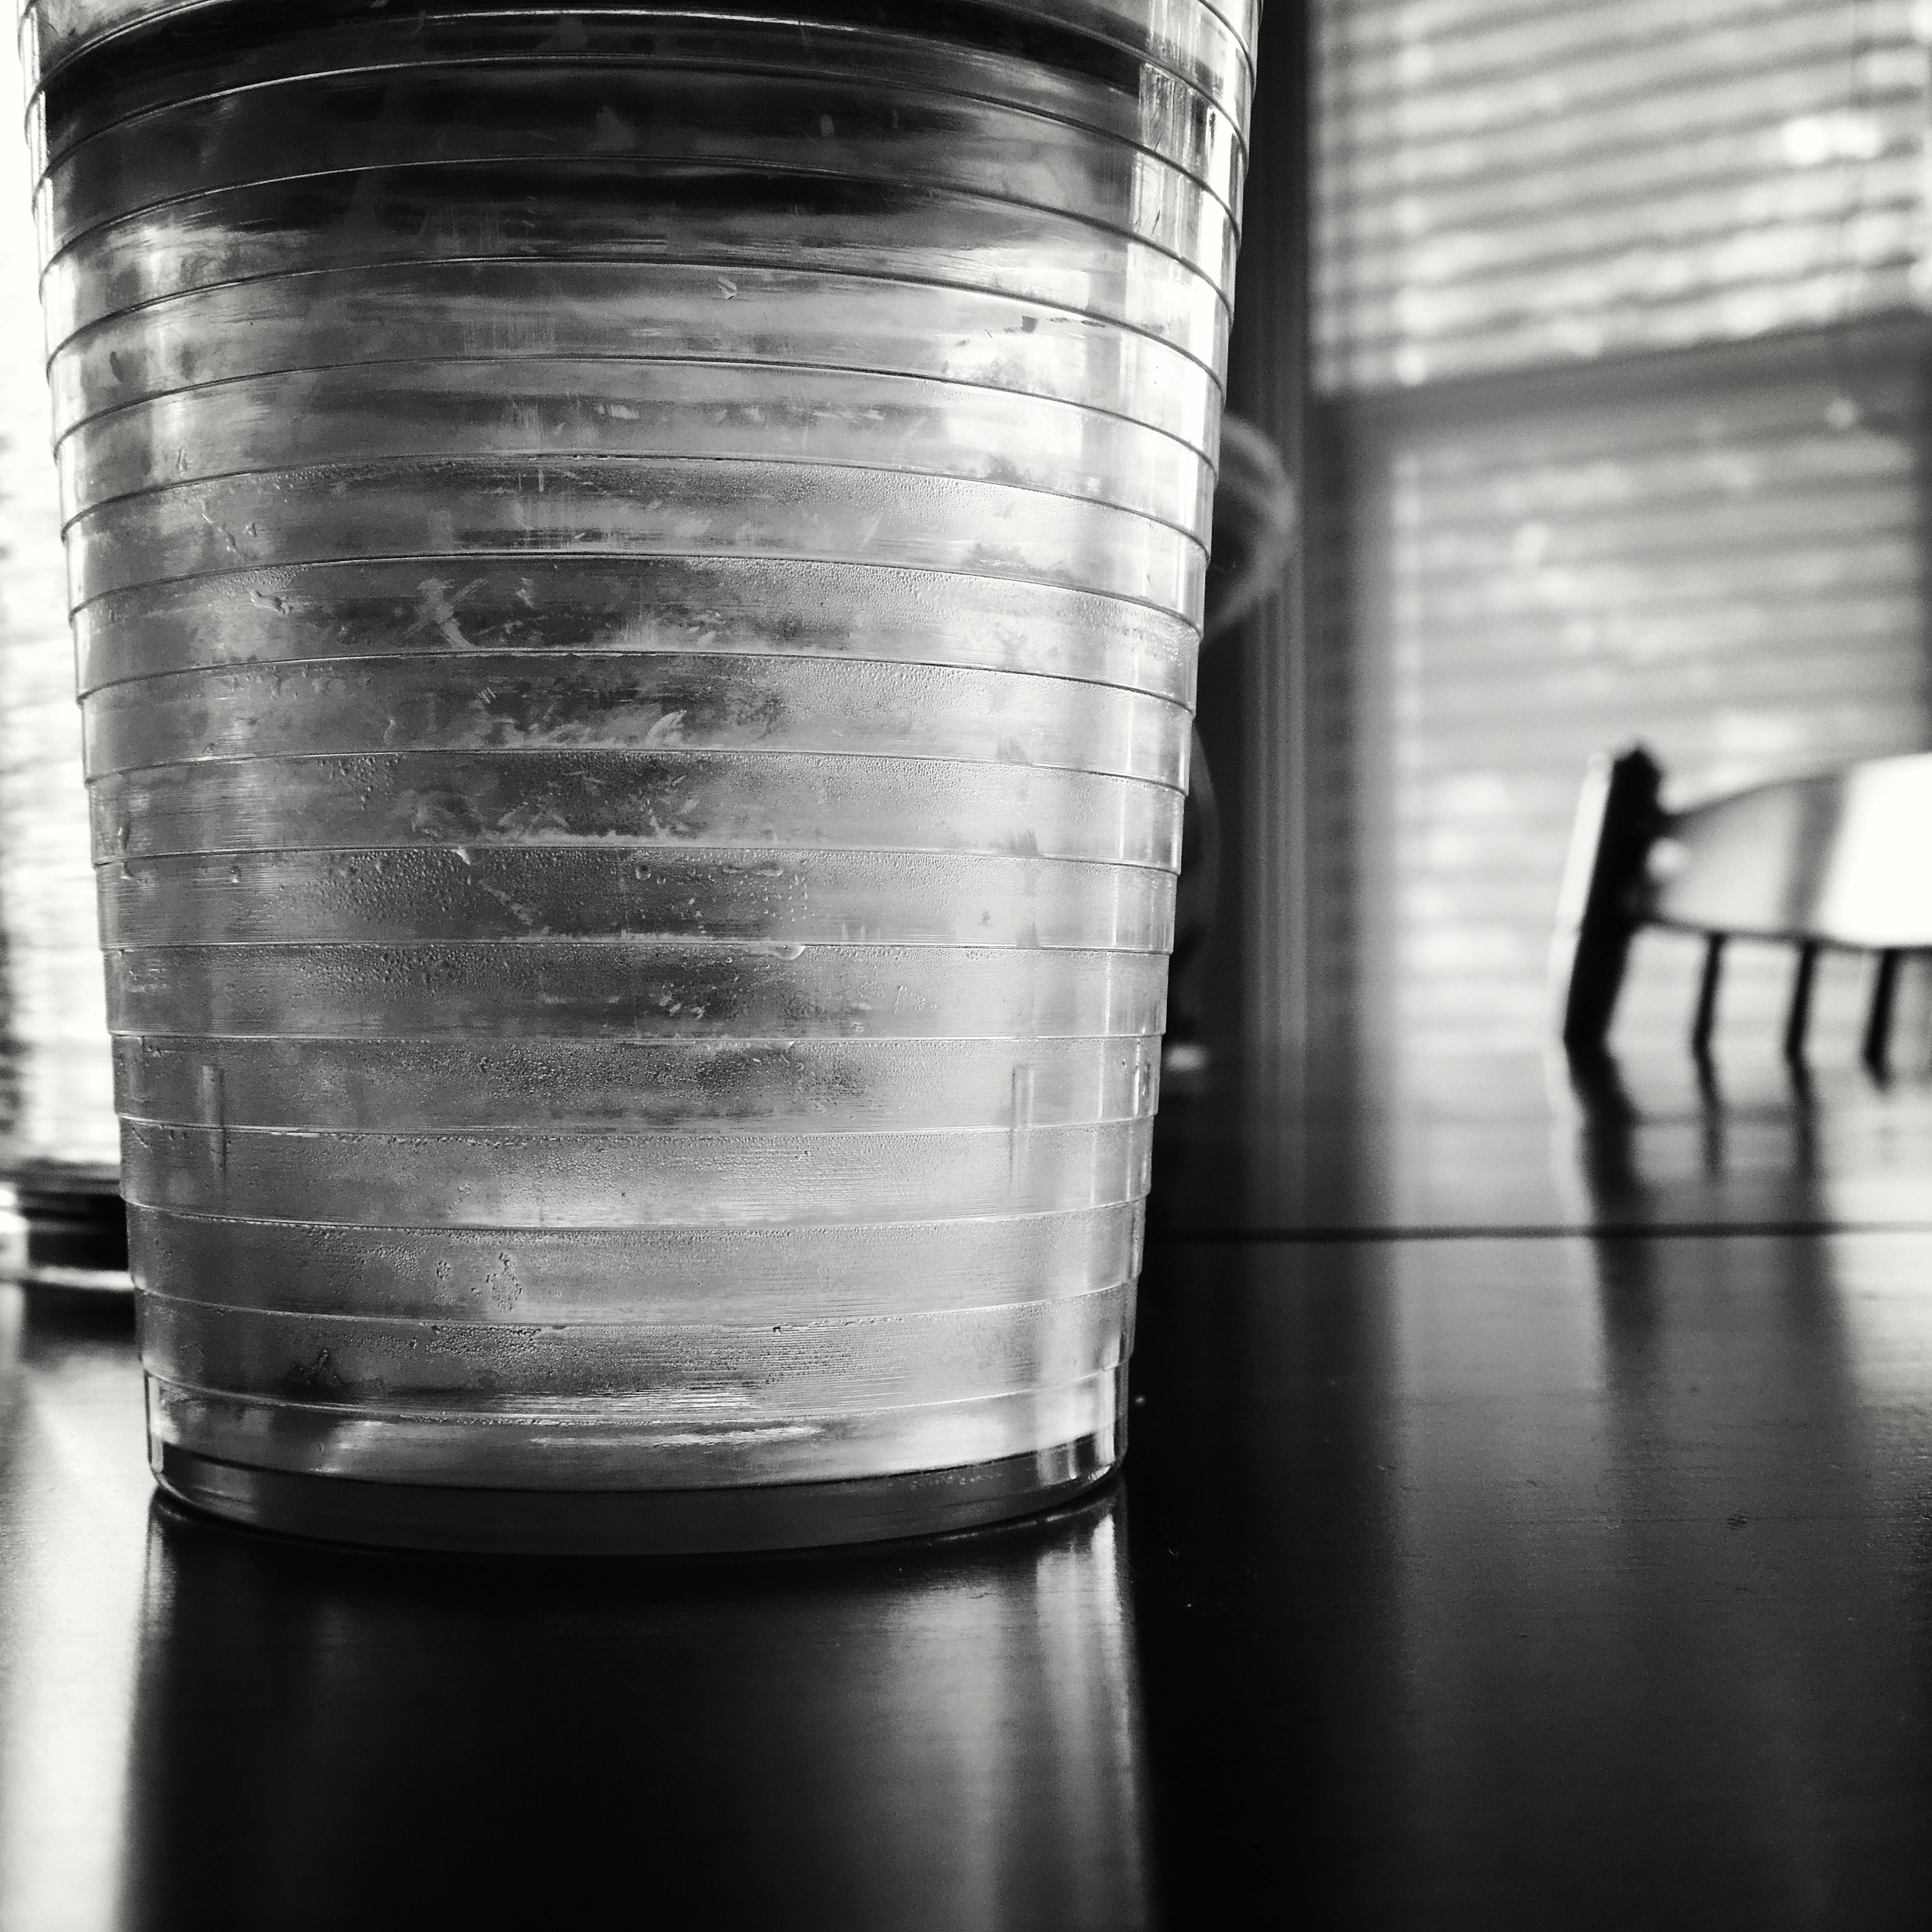 indoors, drink, table, food and drink, refreshment, close-up, drinking glass, still life, freshness, wood - material, focus on foreground, glass, glass - material, wooden, drinking straw, high angle view, no people, bottle, beverage, liquid